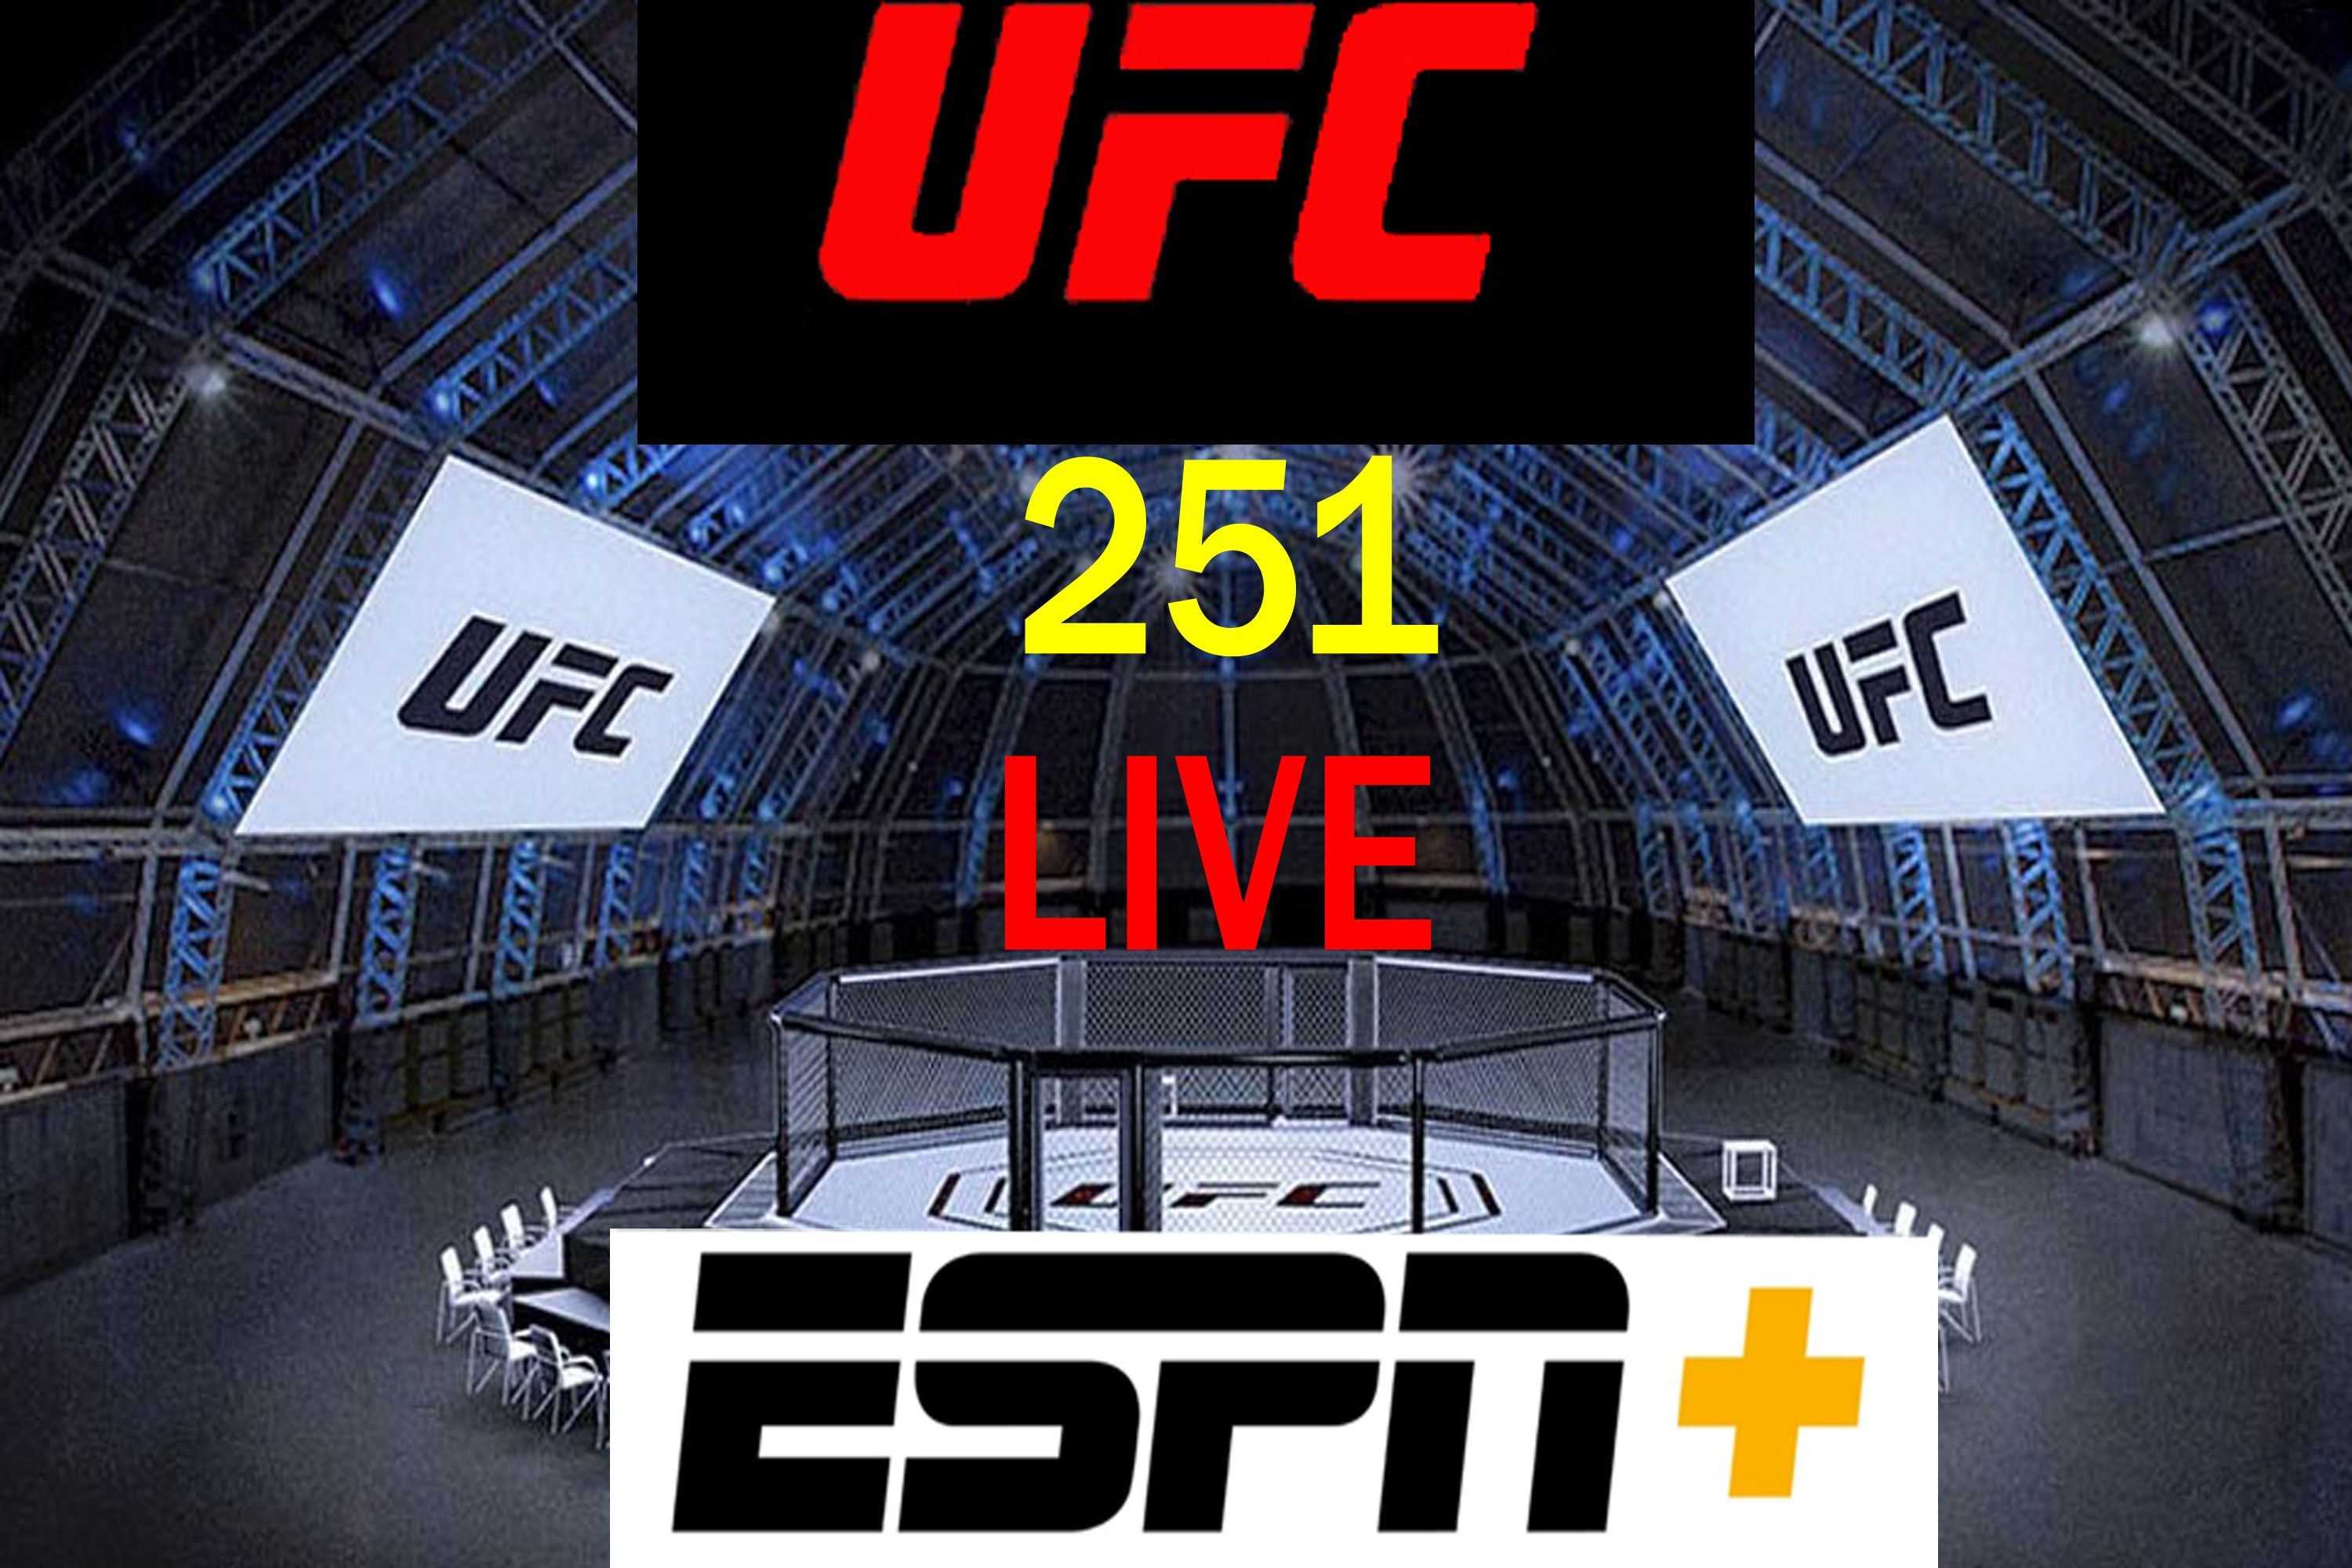 Live ufc 251 ppv live on espn from anywhere in 2020 ufc